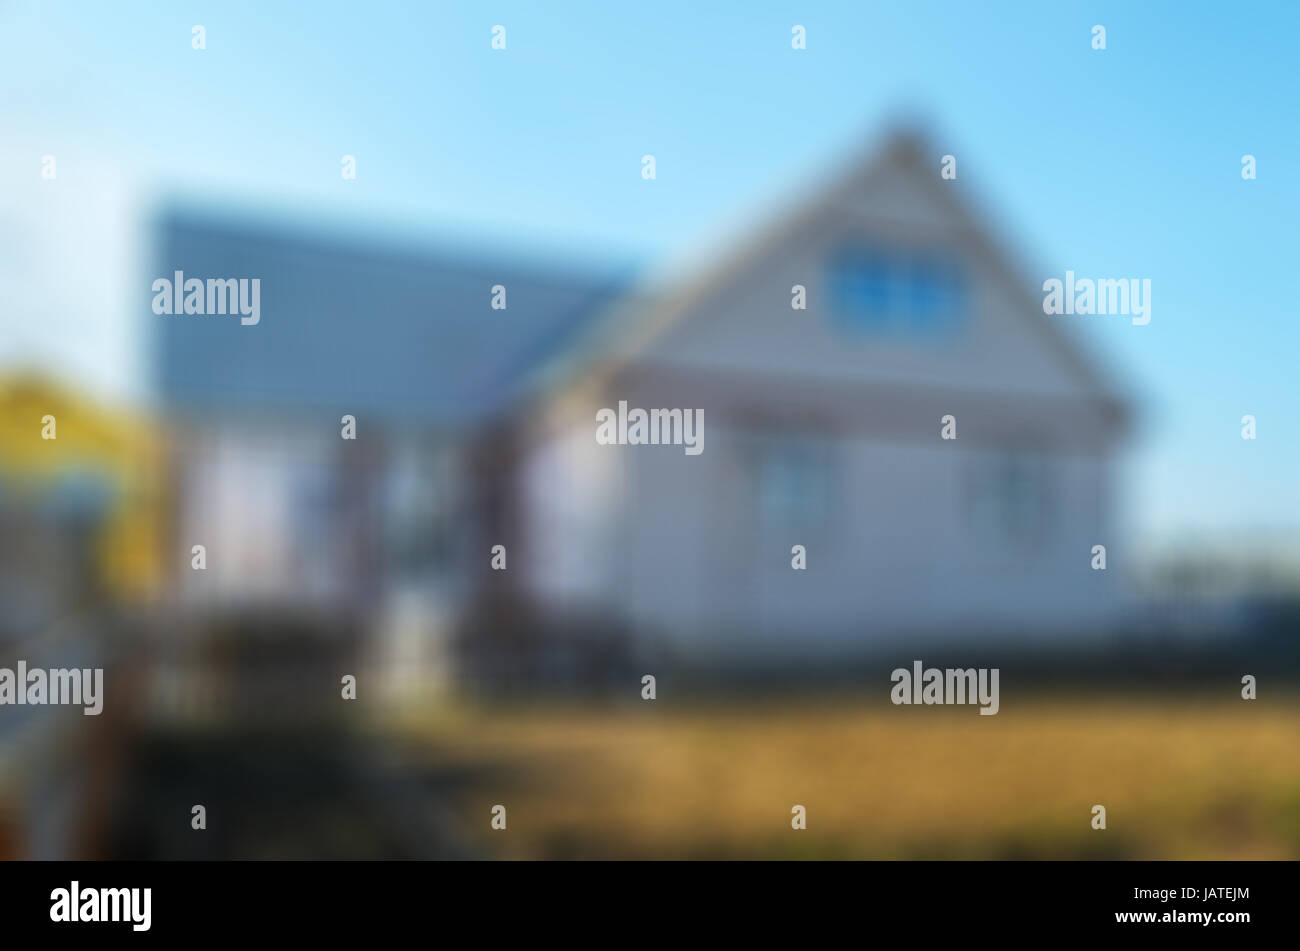 Blured view on a facade of private house Stock Photo